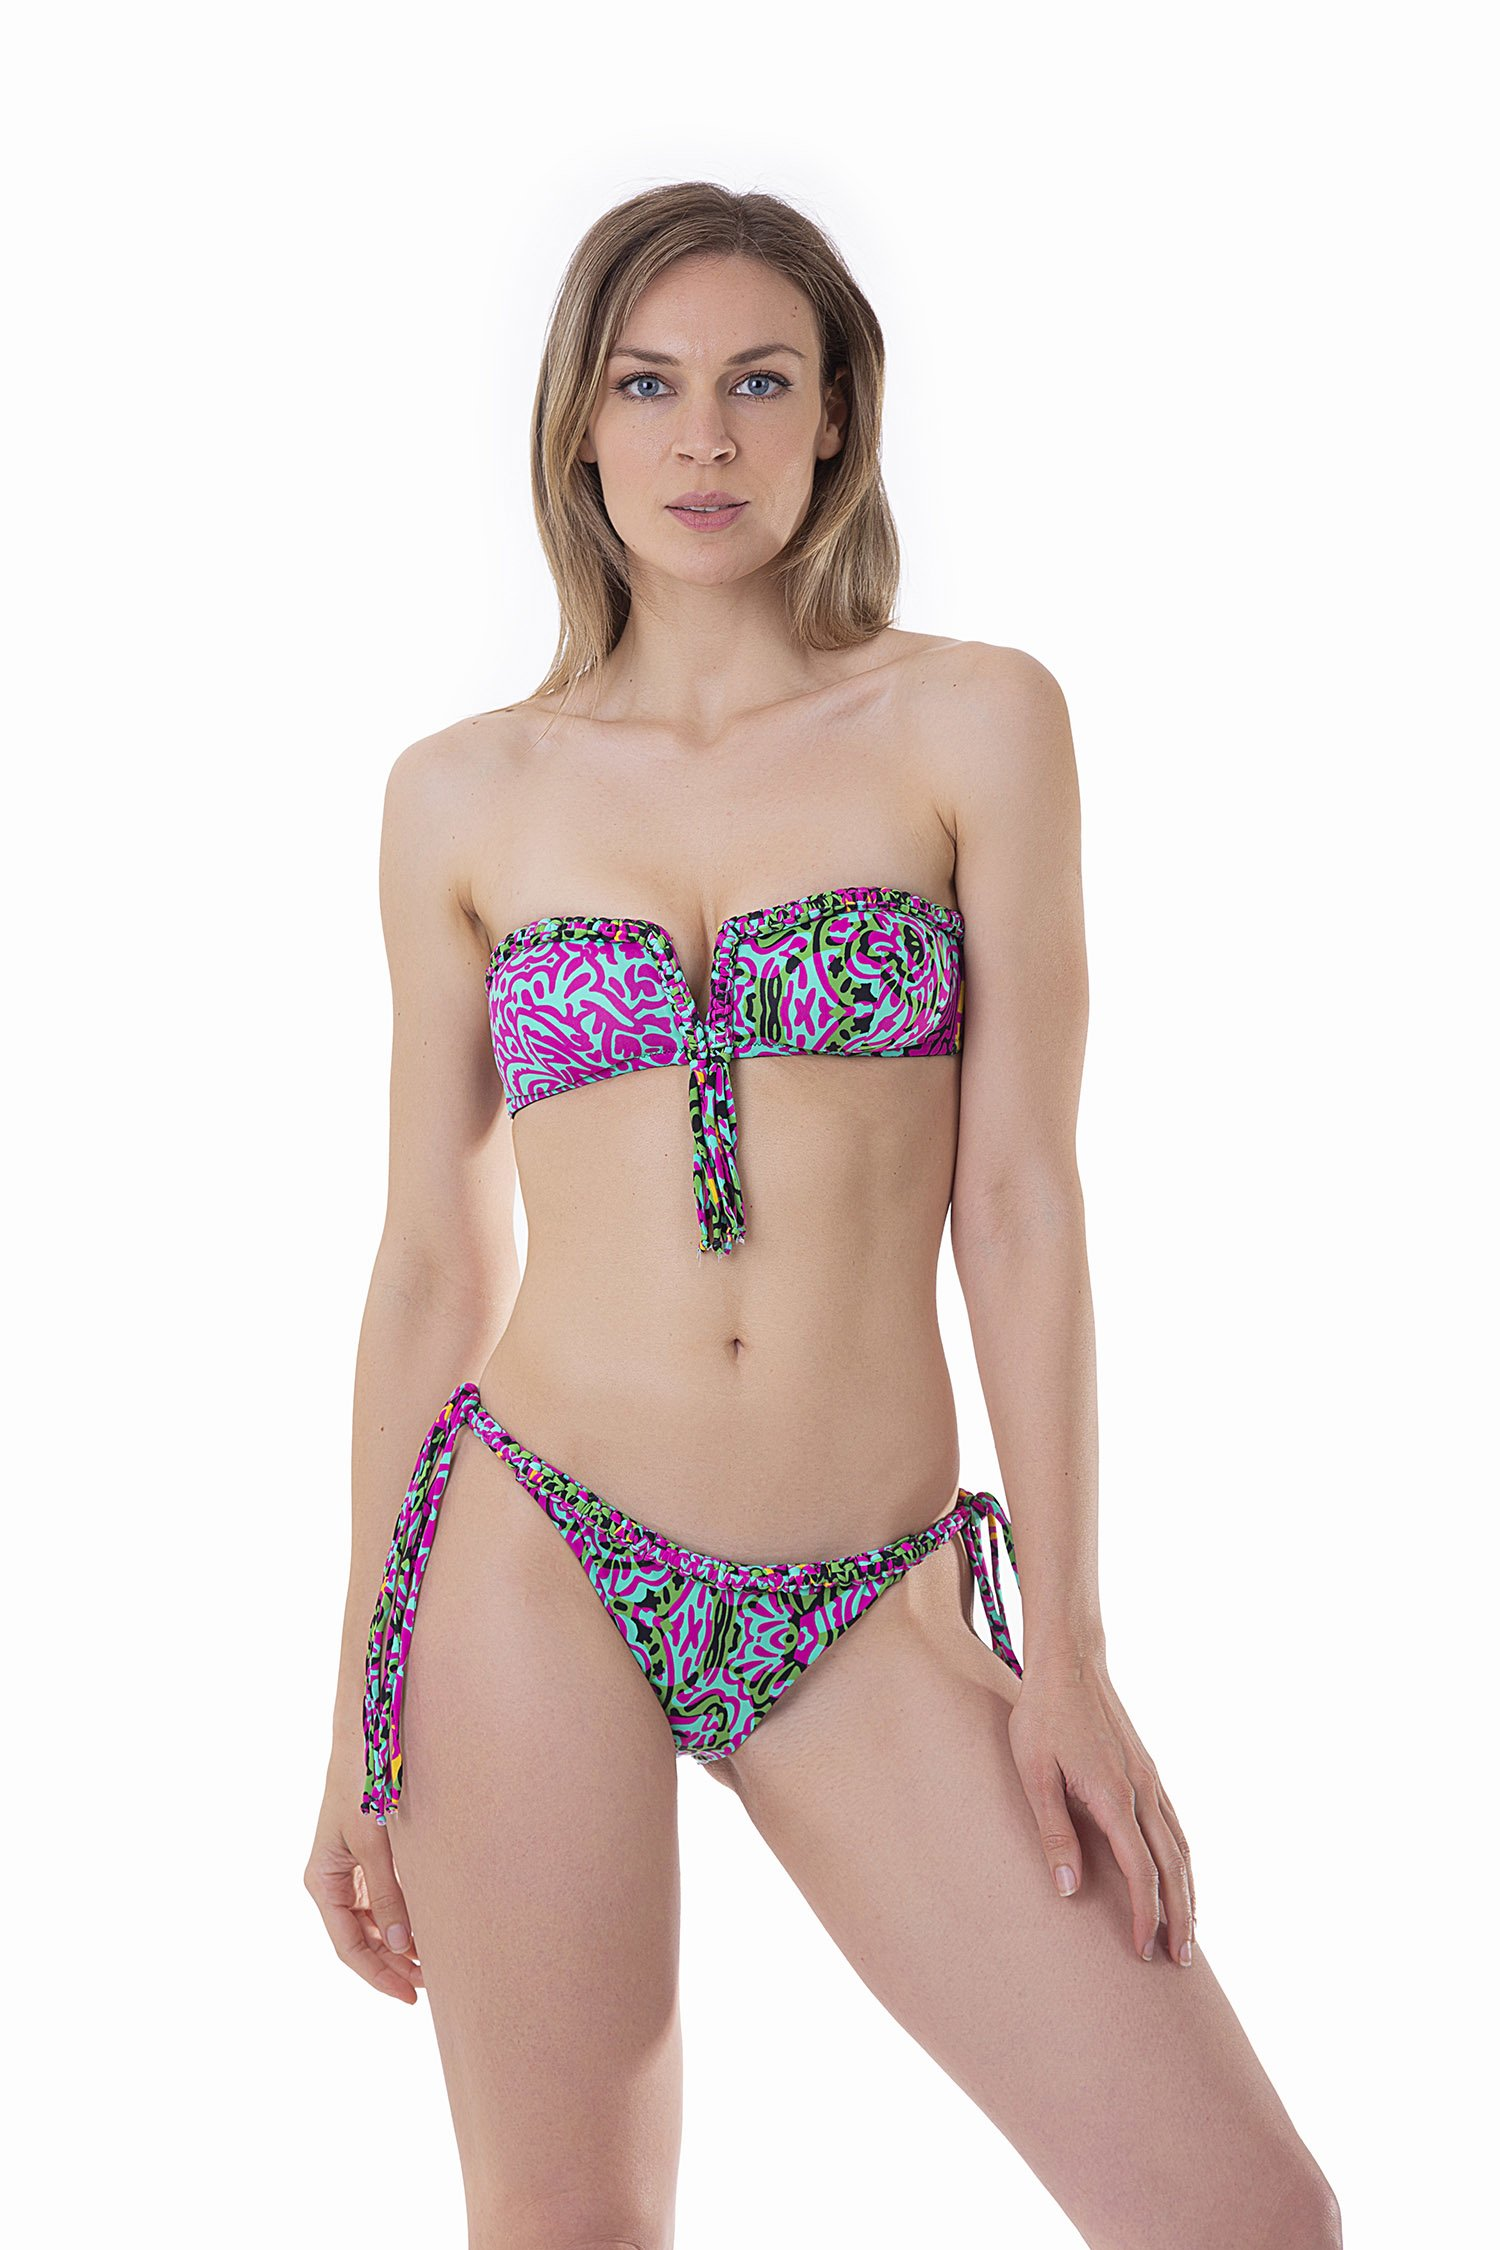 LUXE PRINTED BANDEAU BIKINI WITH MACRAME' BRAZILIAN BOTTOM - India Pop Fuxia